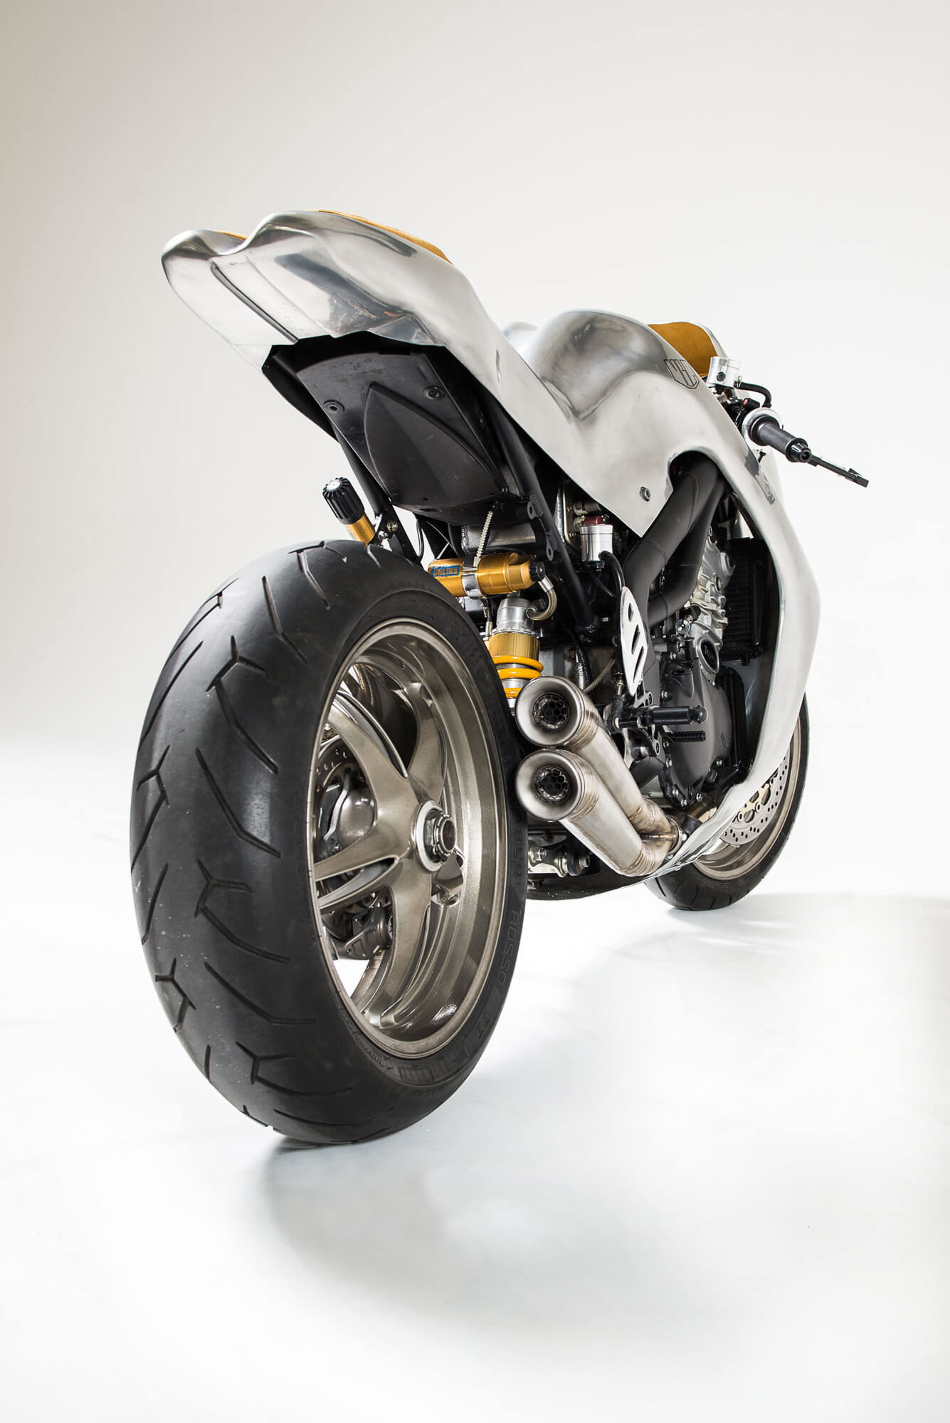 La Triumph Speed Triple MBG_001 de Metalbike Garage